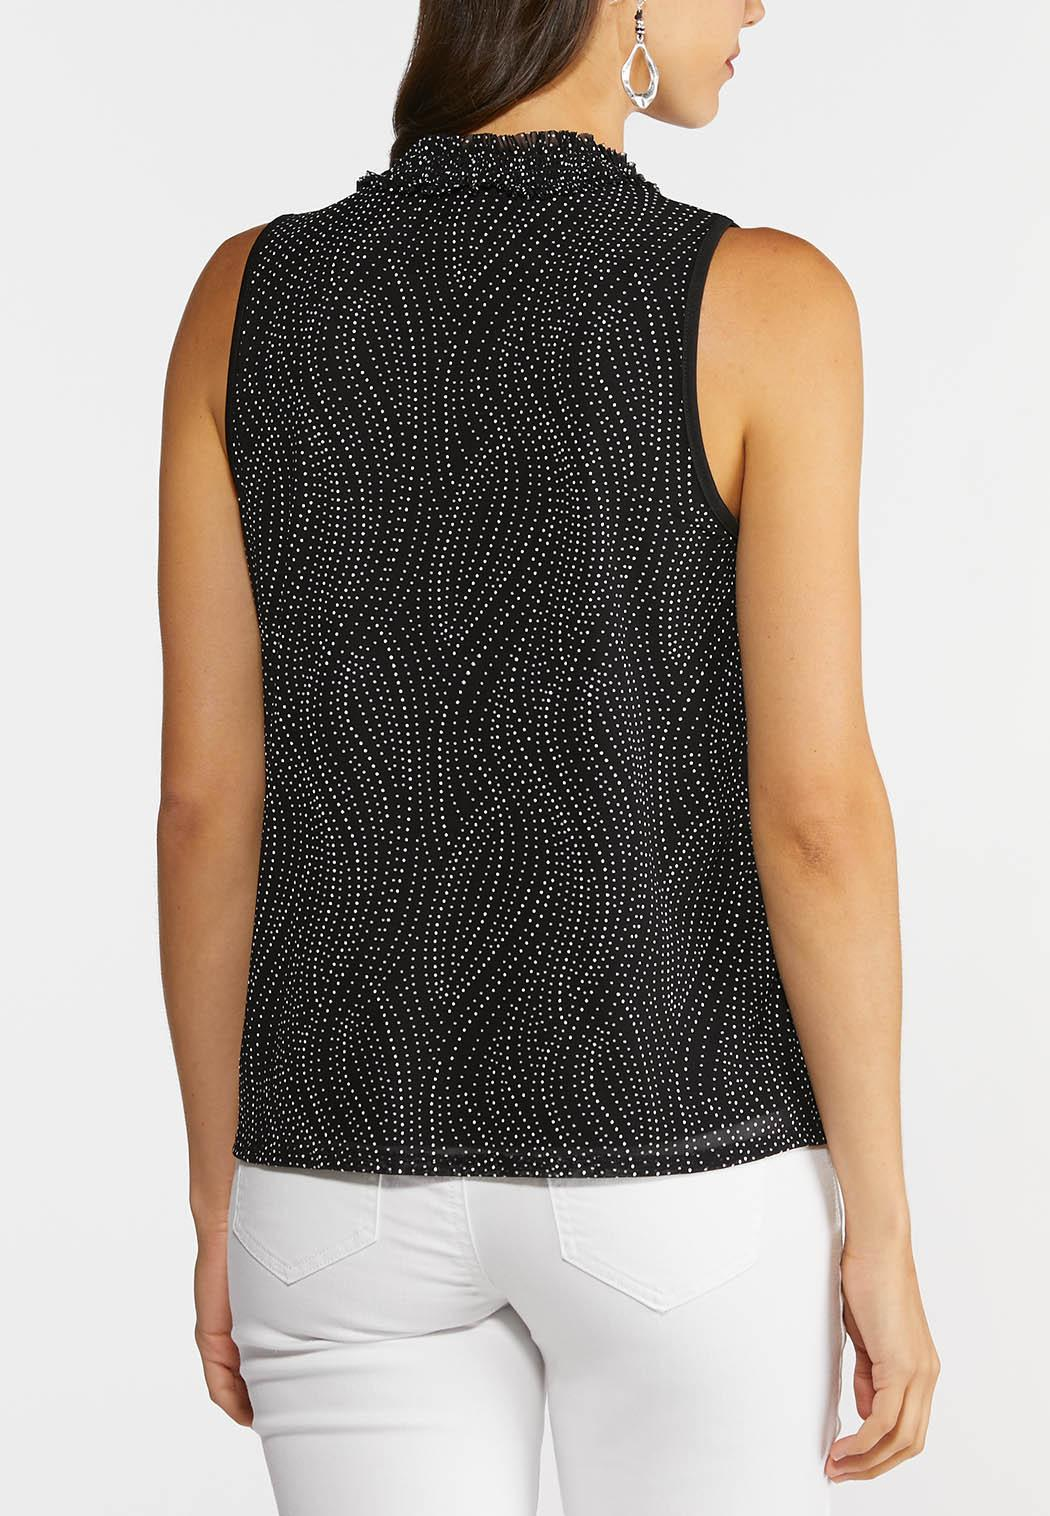 Dotted Mock Neck Top (Item #44271557)